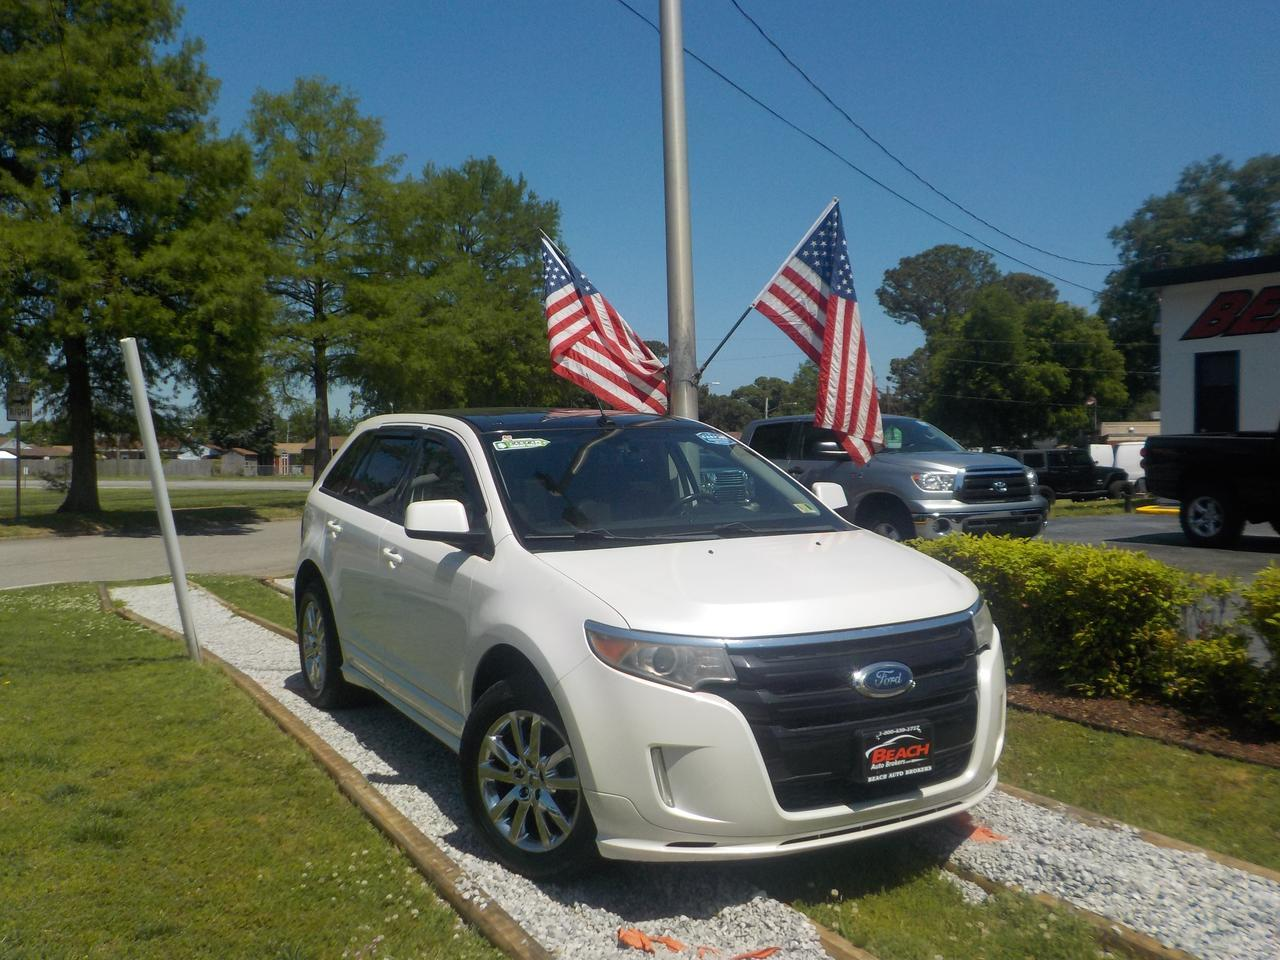 2011 FORD EDGE SPORT, WARRANTY, LEATHER, SUNROOF, REMOTE START, NAV, HEATED/COOLED SEATS, POWER LIFTGATE!